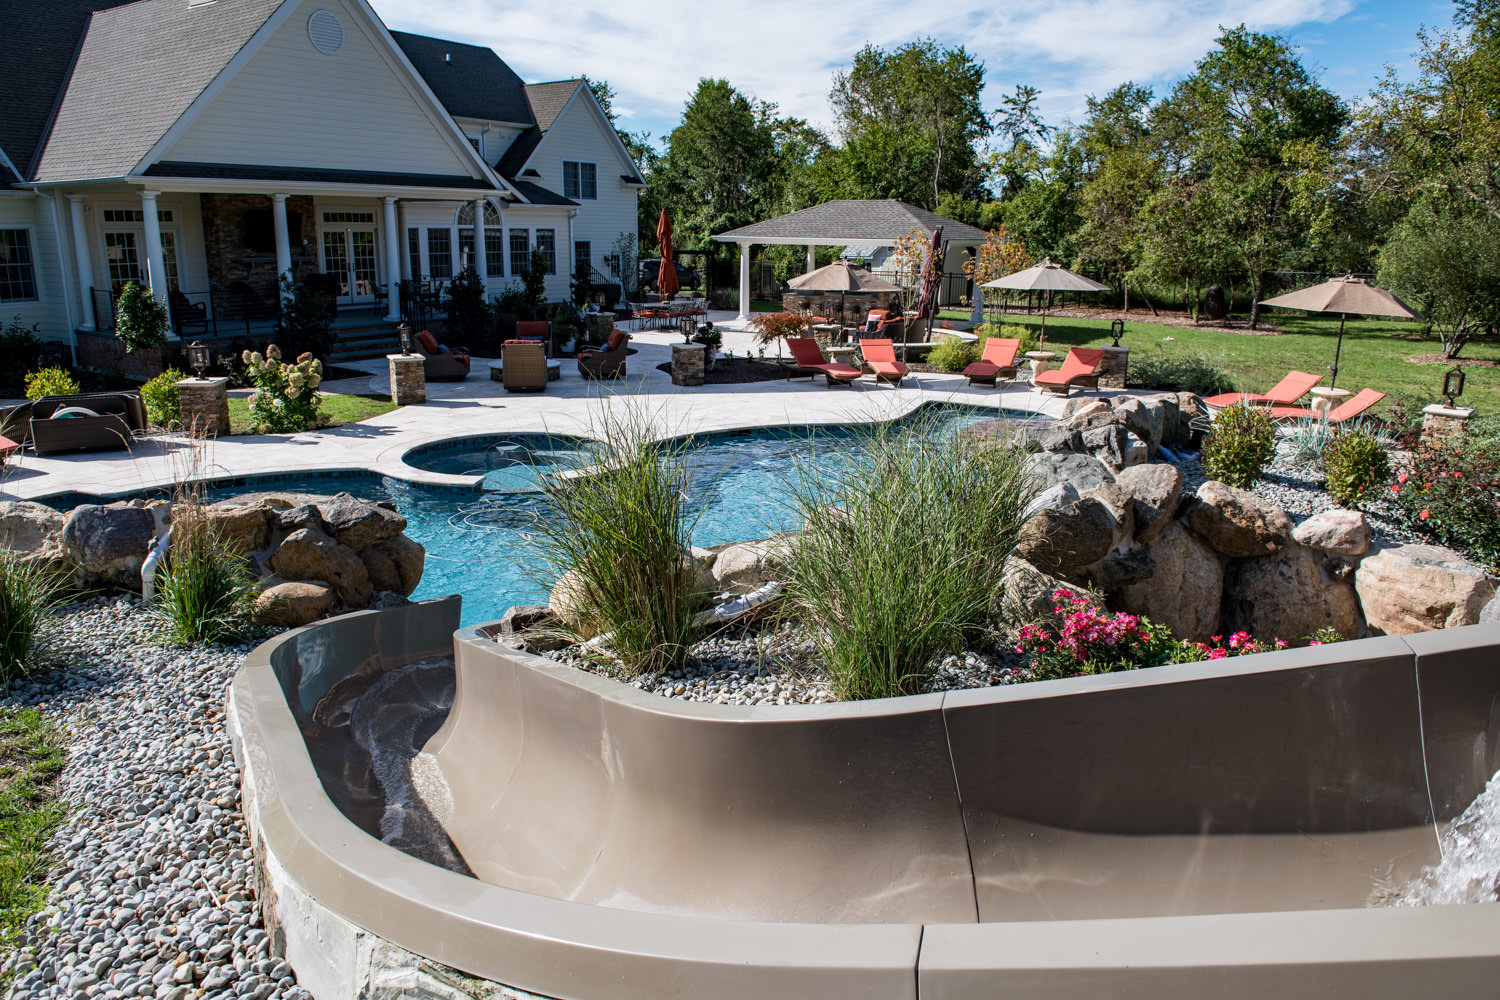 12-Custom-Pool-Design-Pennington-NJ-K-and-C-Land-Design.jpg